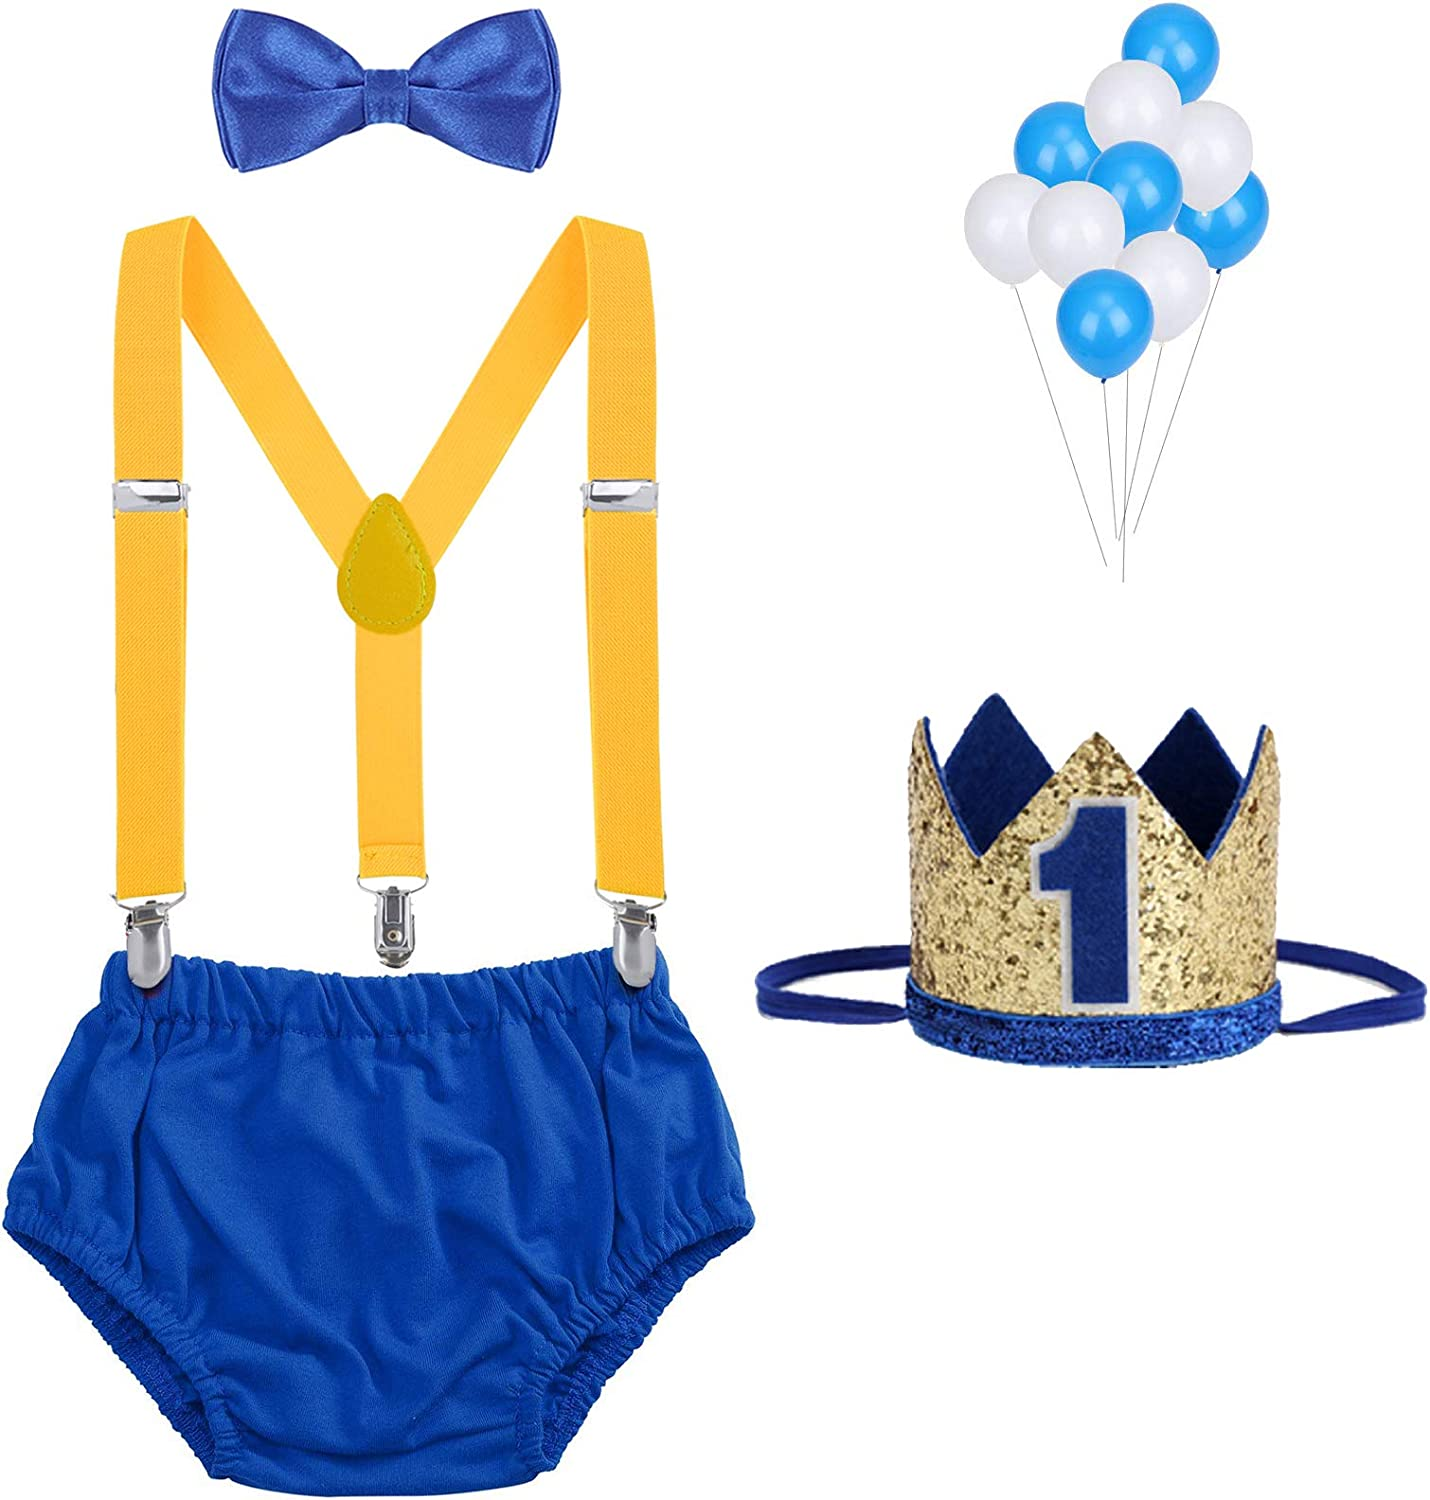 WELROG Baby Boys First Birthday Cake Smash Outfit Bloomers Bow Tie Suspenders Birthday Hat Set Fishing Party Diaper Cover